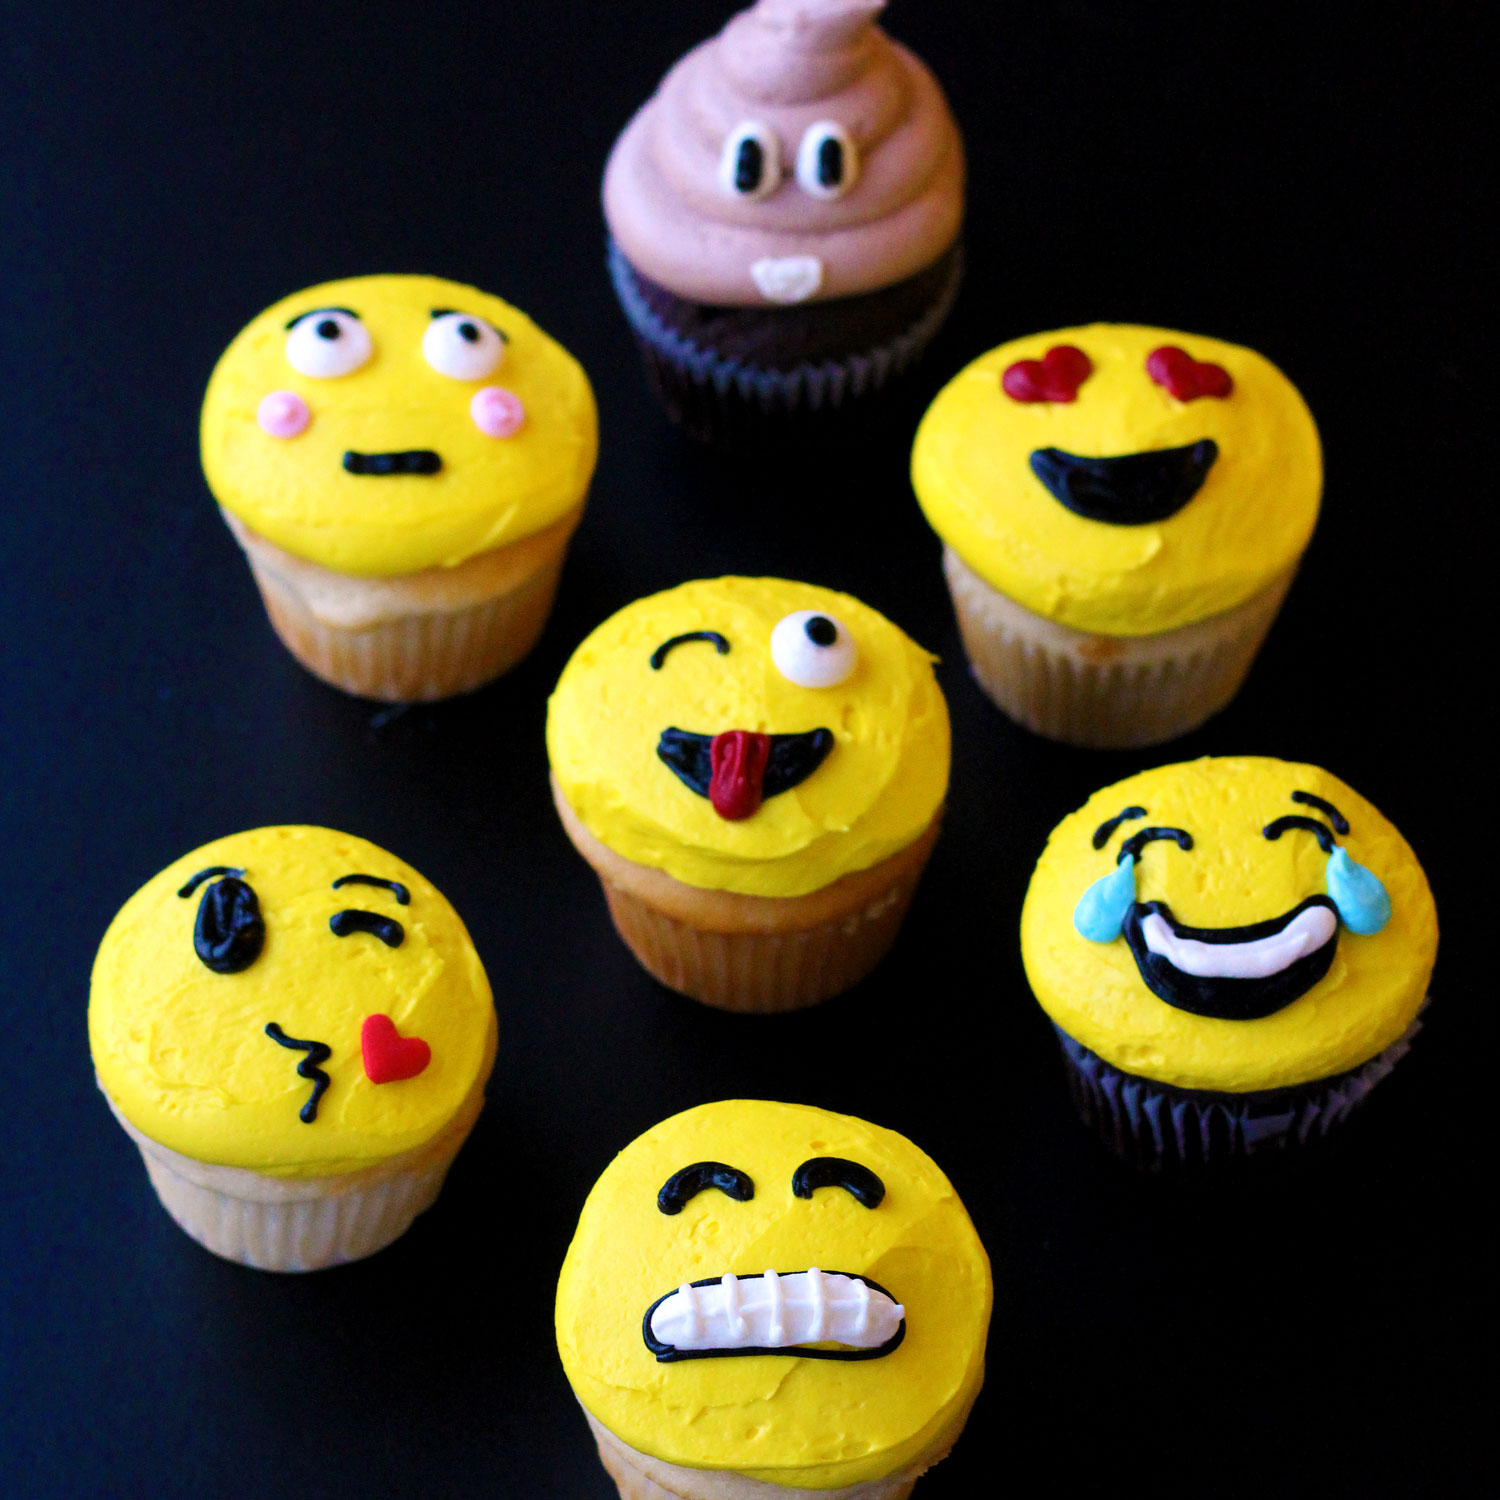 emoji cupcakes by french bakery in northern new jersey cafe pierrot